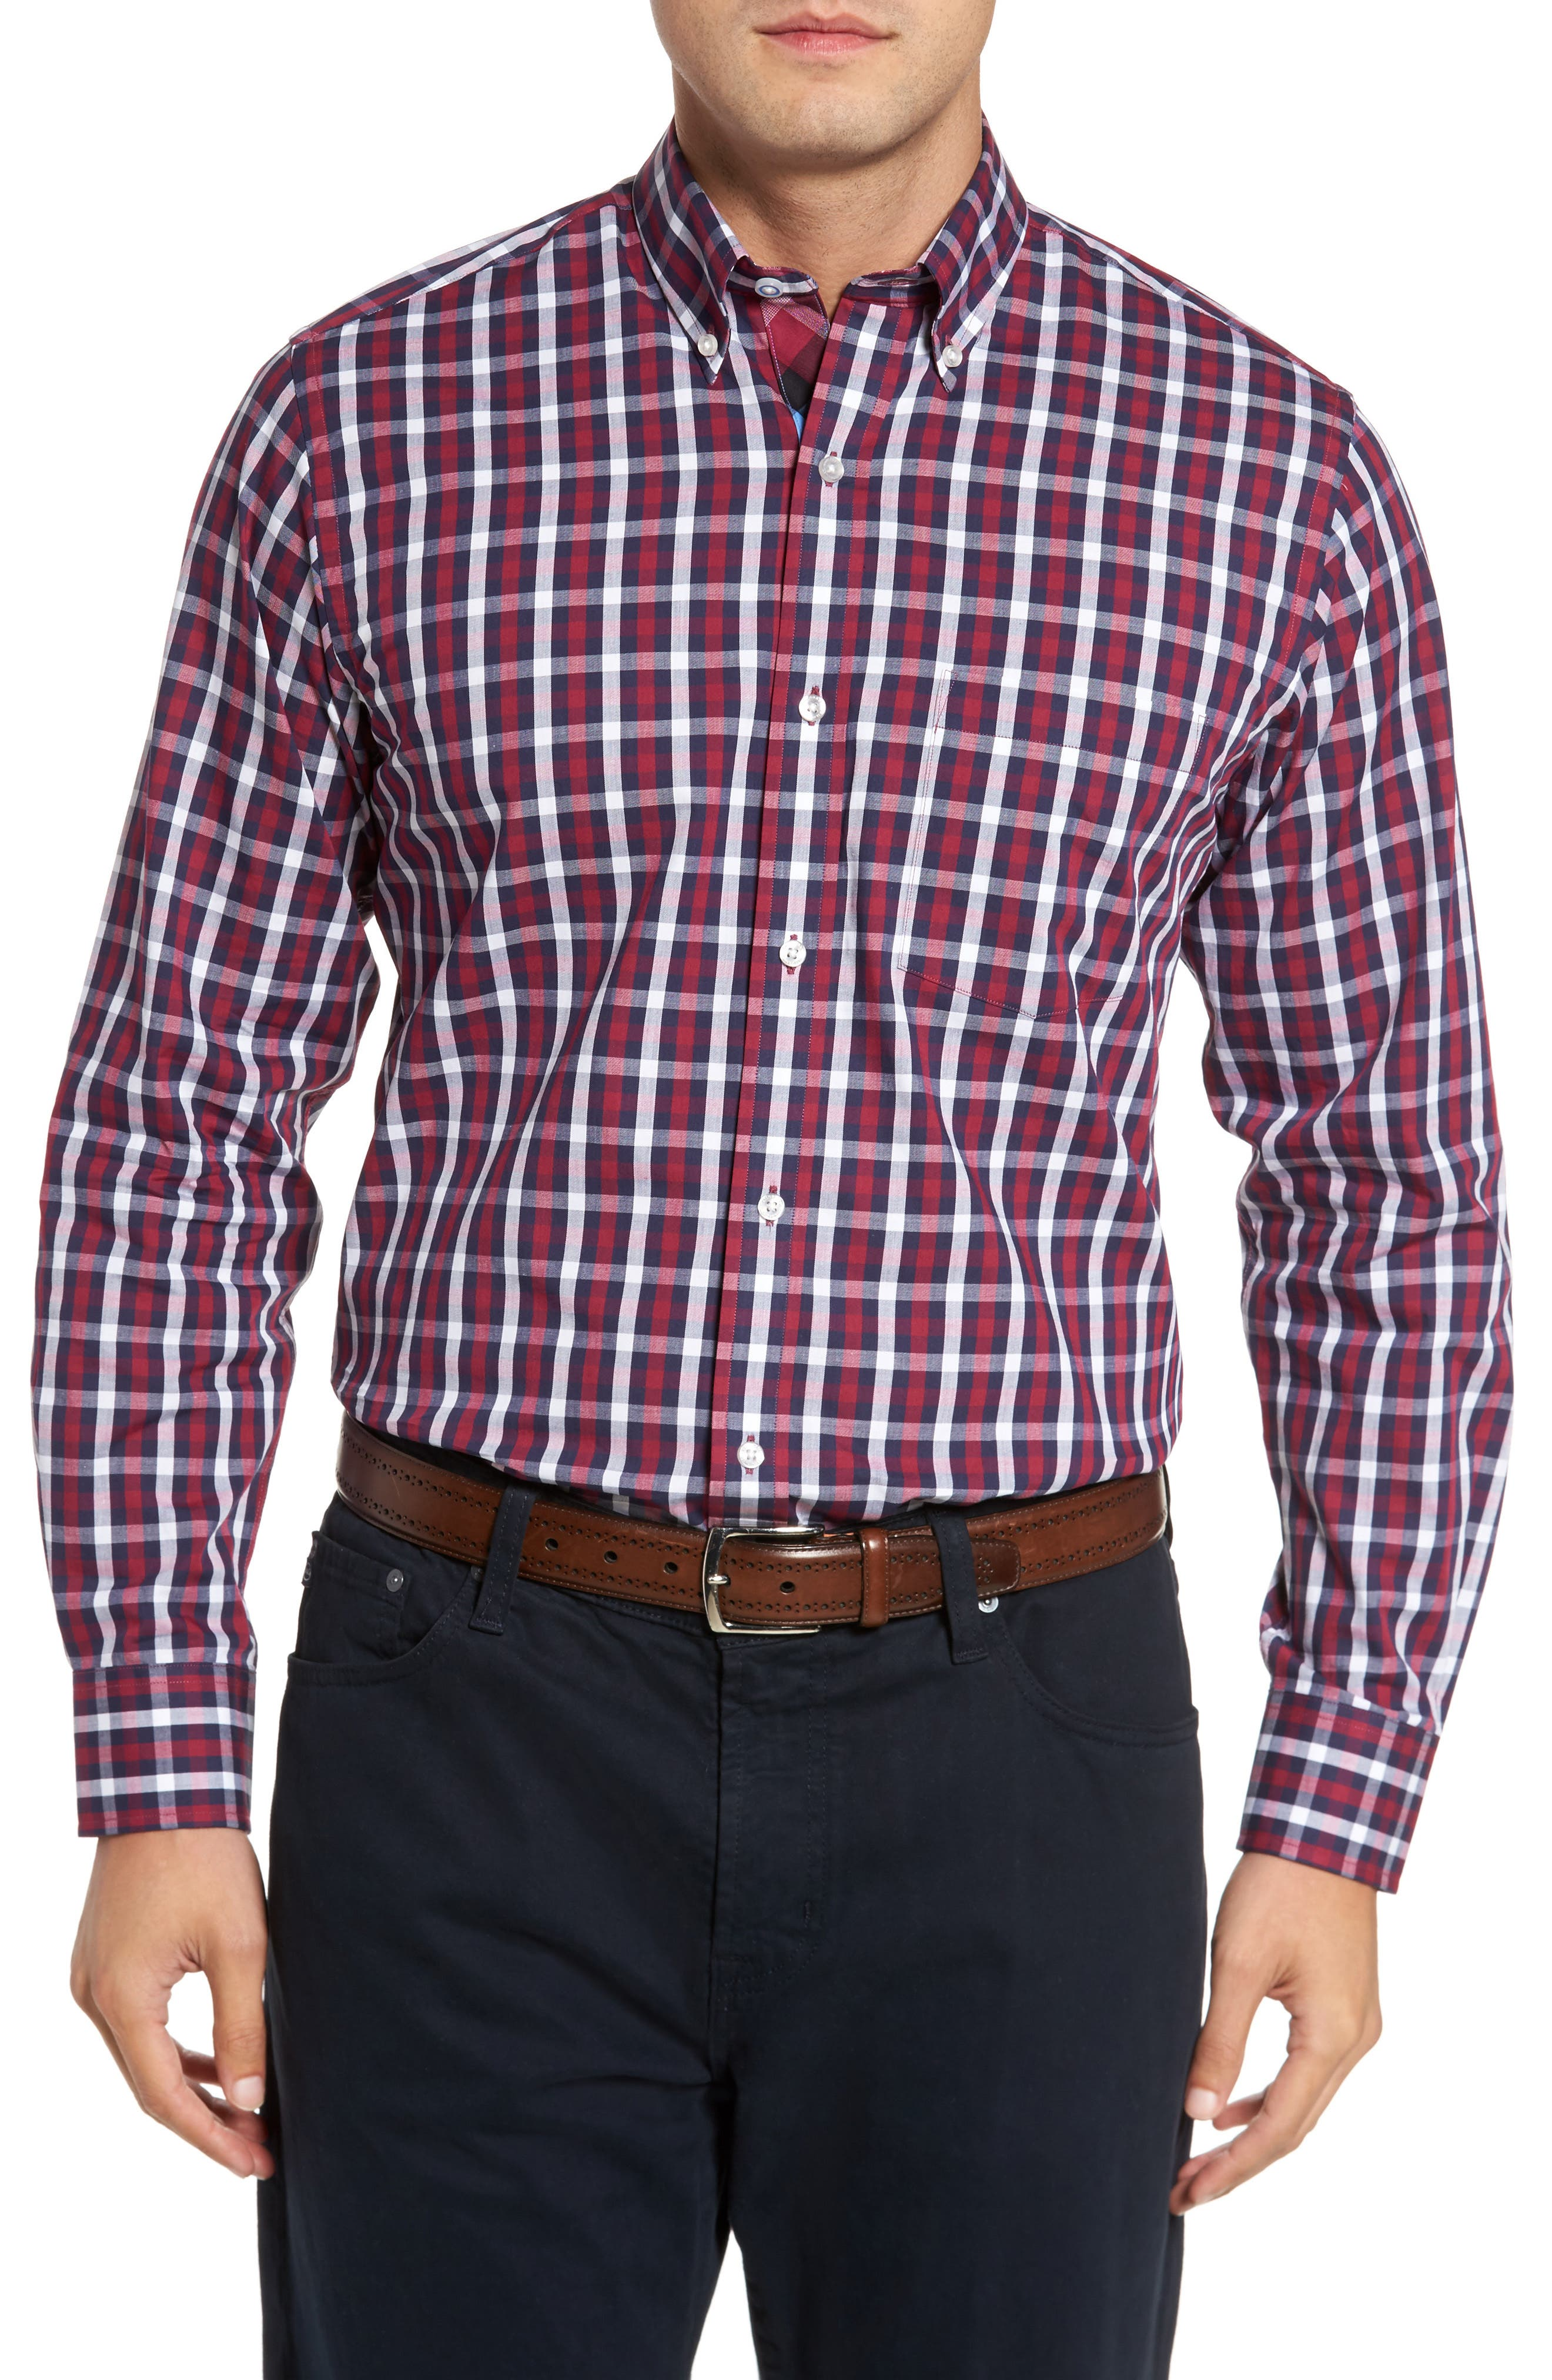 Covington Check Sport Shirt,                             Main thumbnail 1, color,                             617